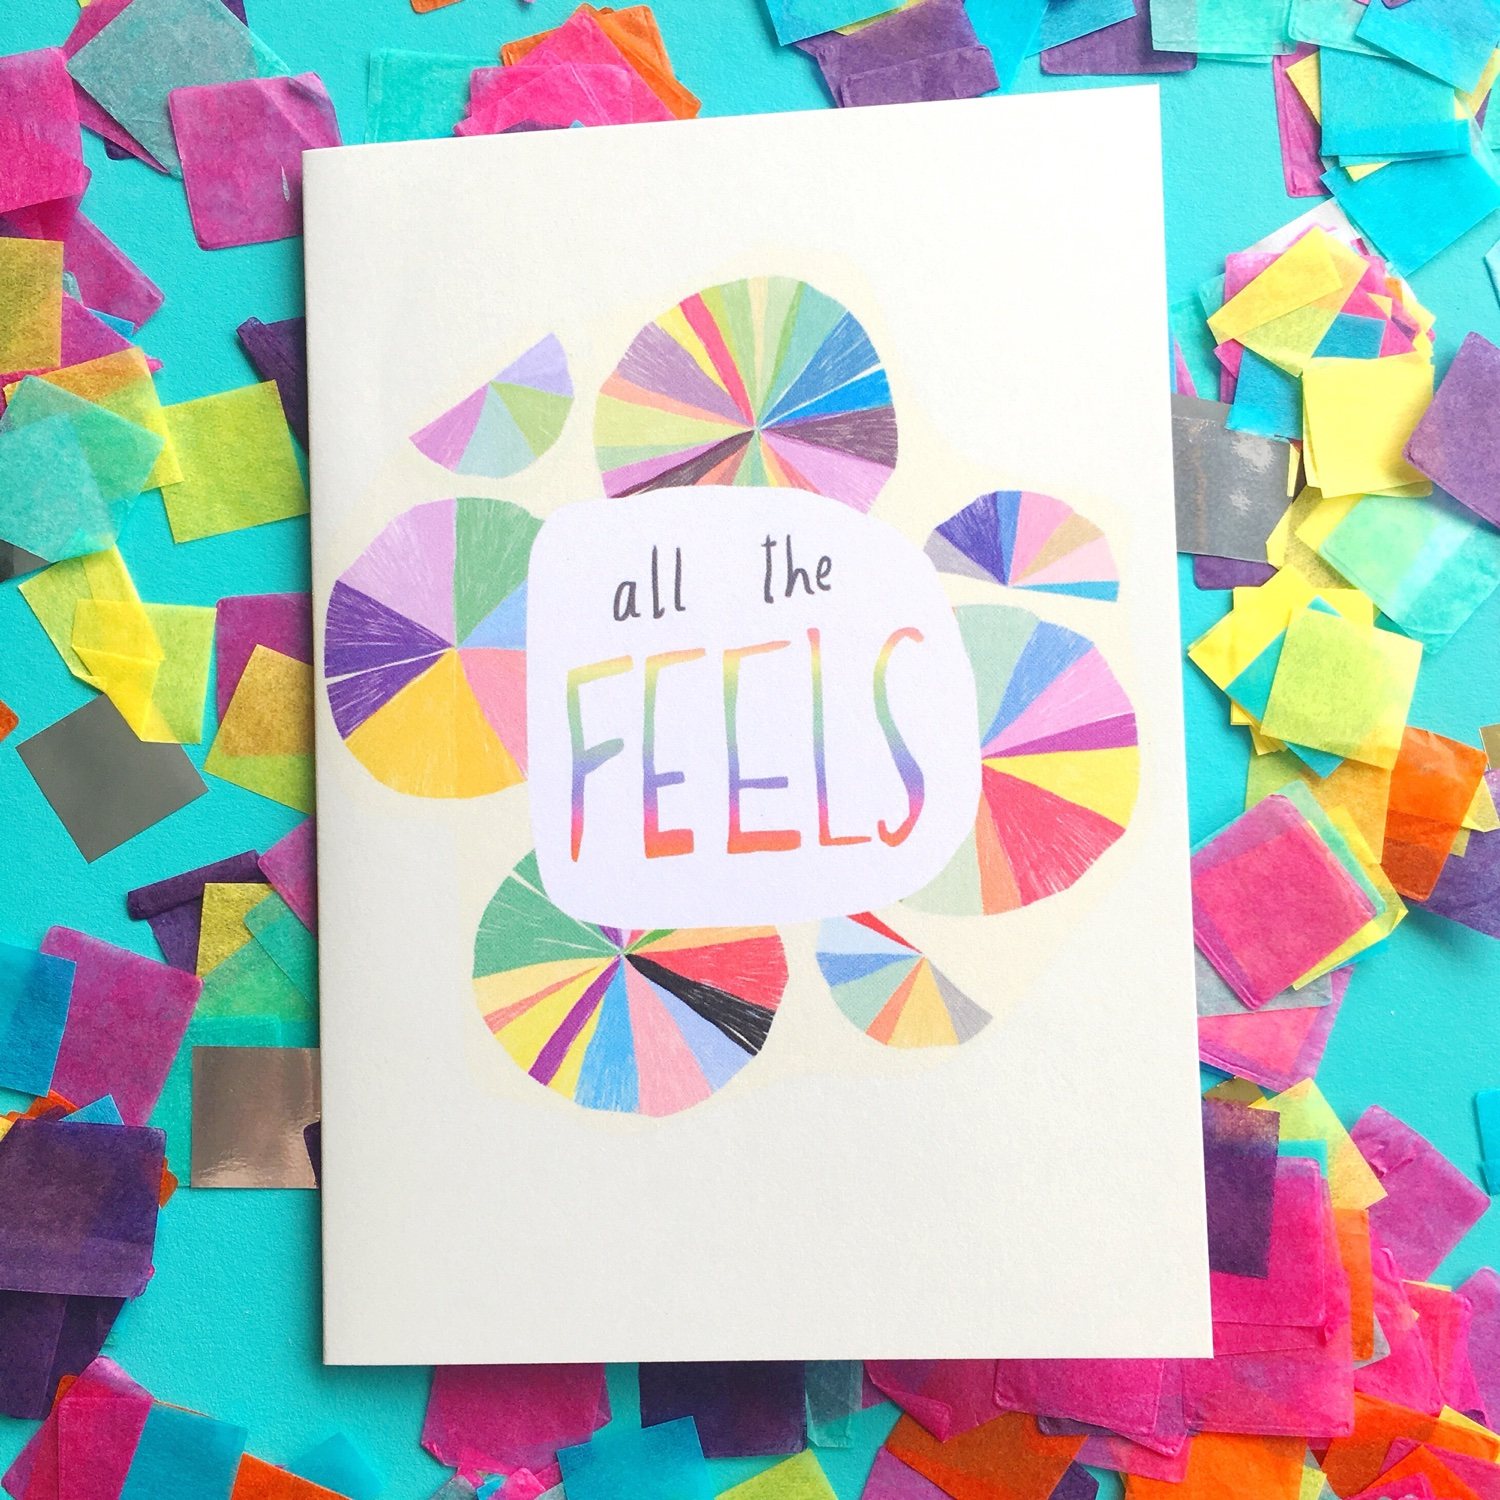 Nicola Rowlands 'All the Feels' | Hello! Hooray!